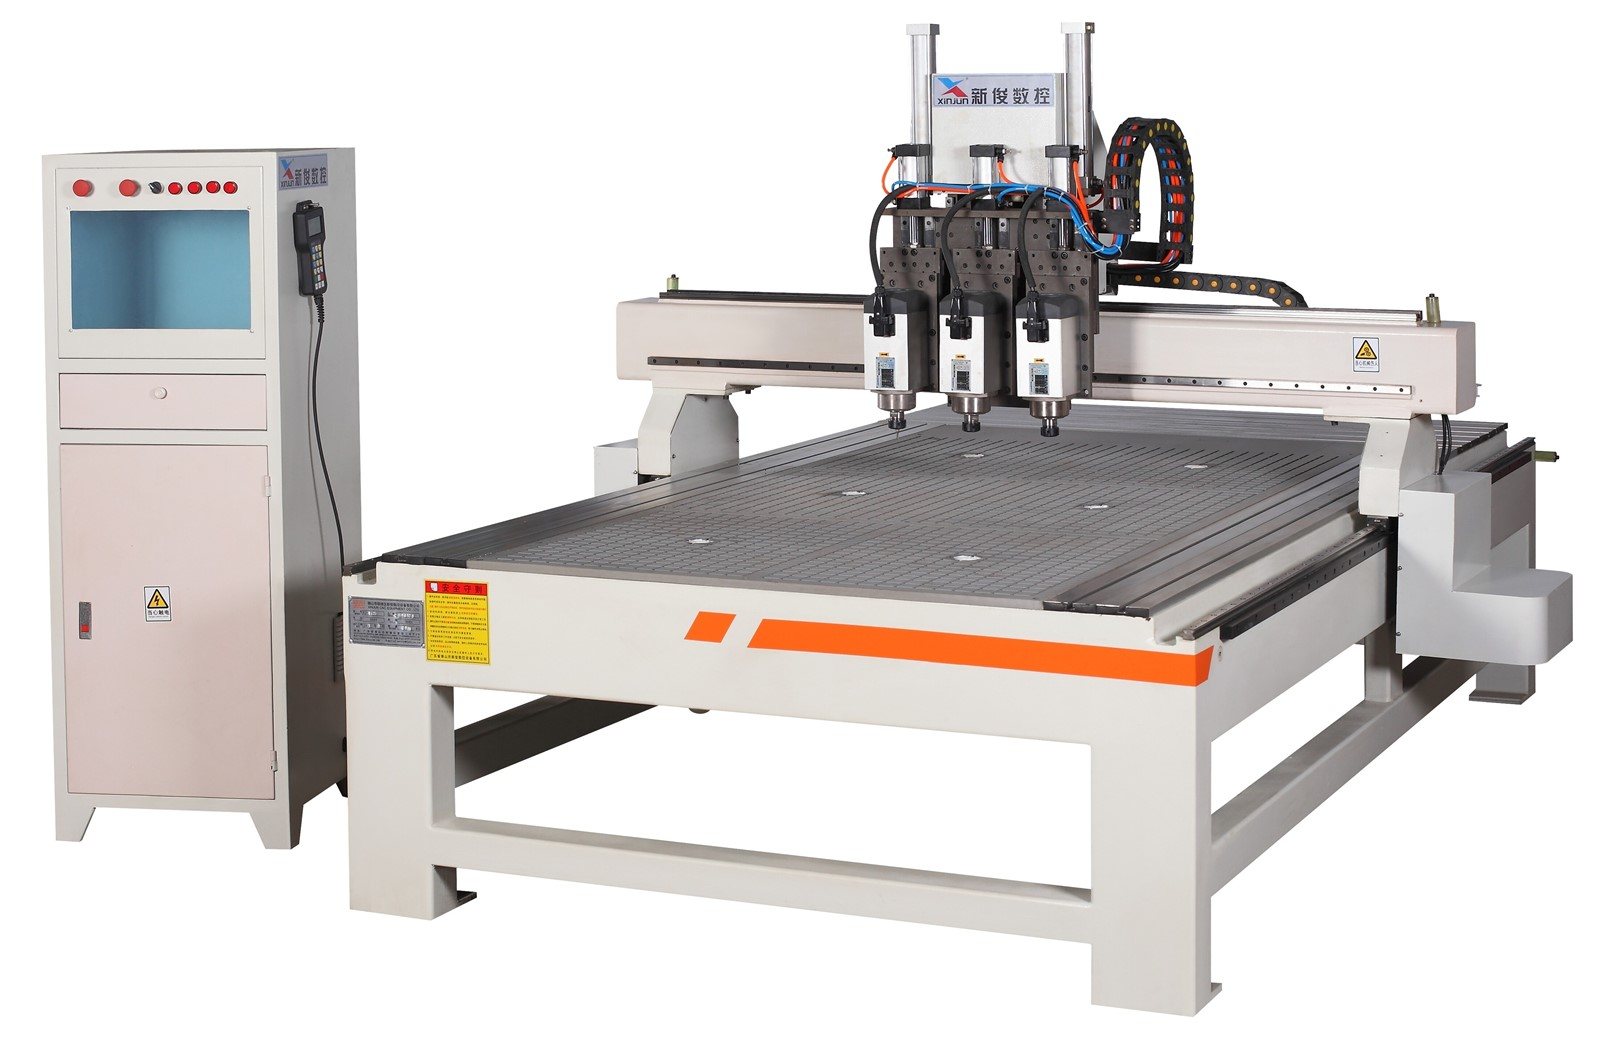 3 axis wood router CNC engraving machine